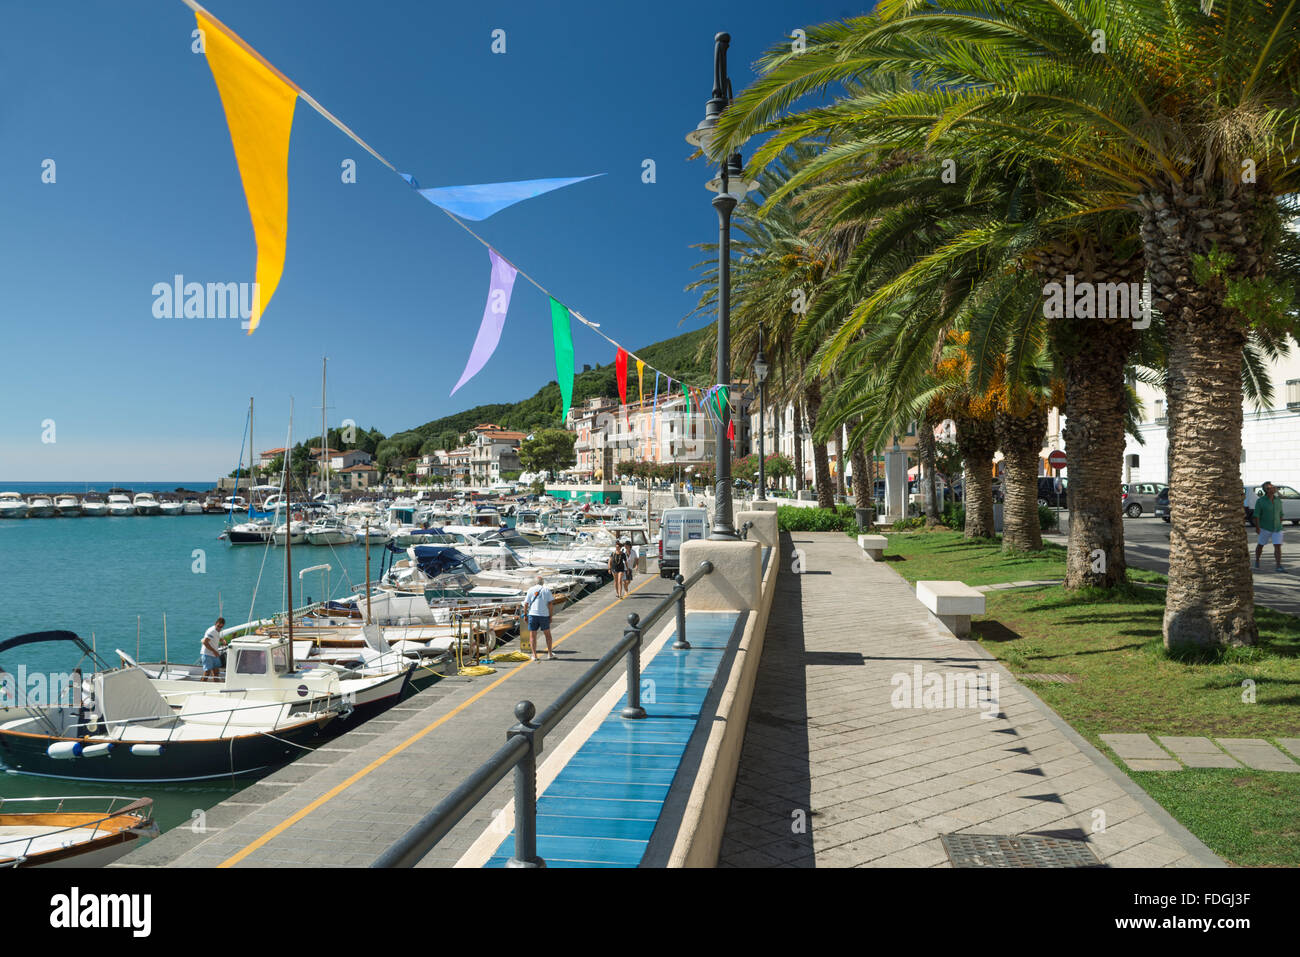 Colorful pennants and palm trees on the harbor promenade in picturesque town of Scario on the coast of Cilento, - Stock Image